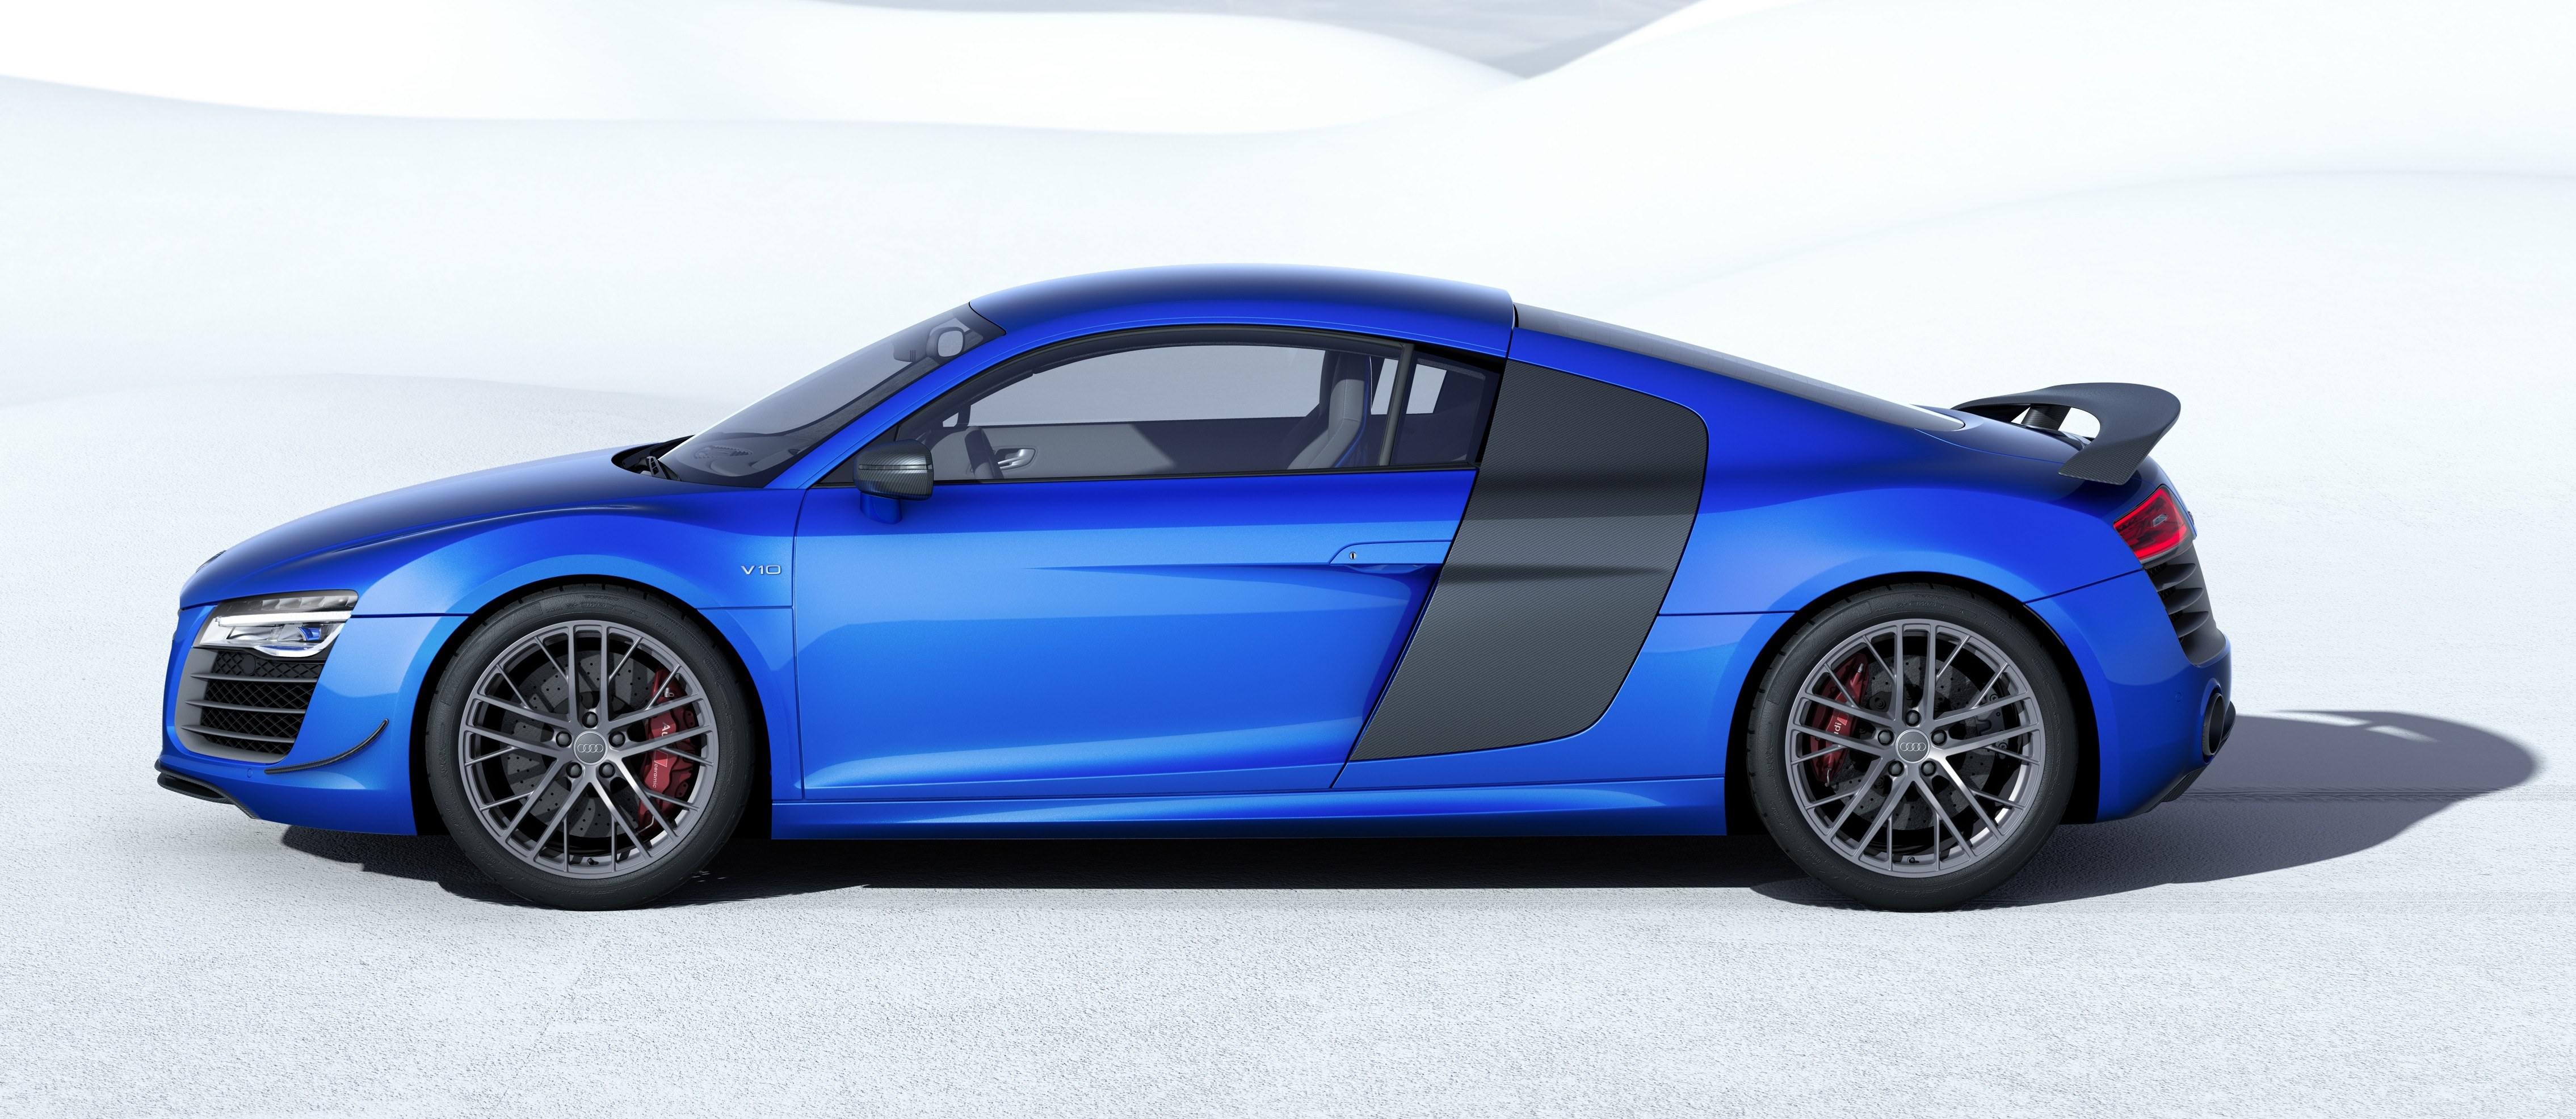 audi r8 lmx 570 ps beast to be first with laser lights image 246863. Black Bedroom Furniture Sets. Home Design Ideas